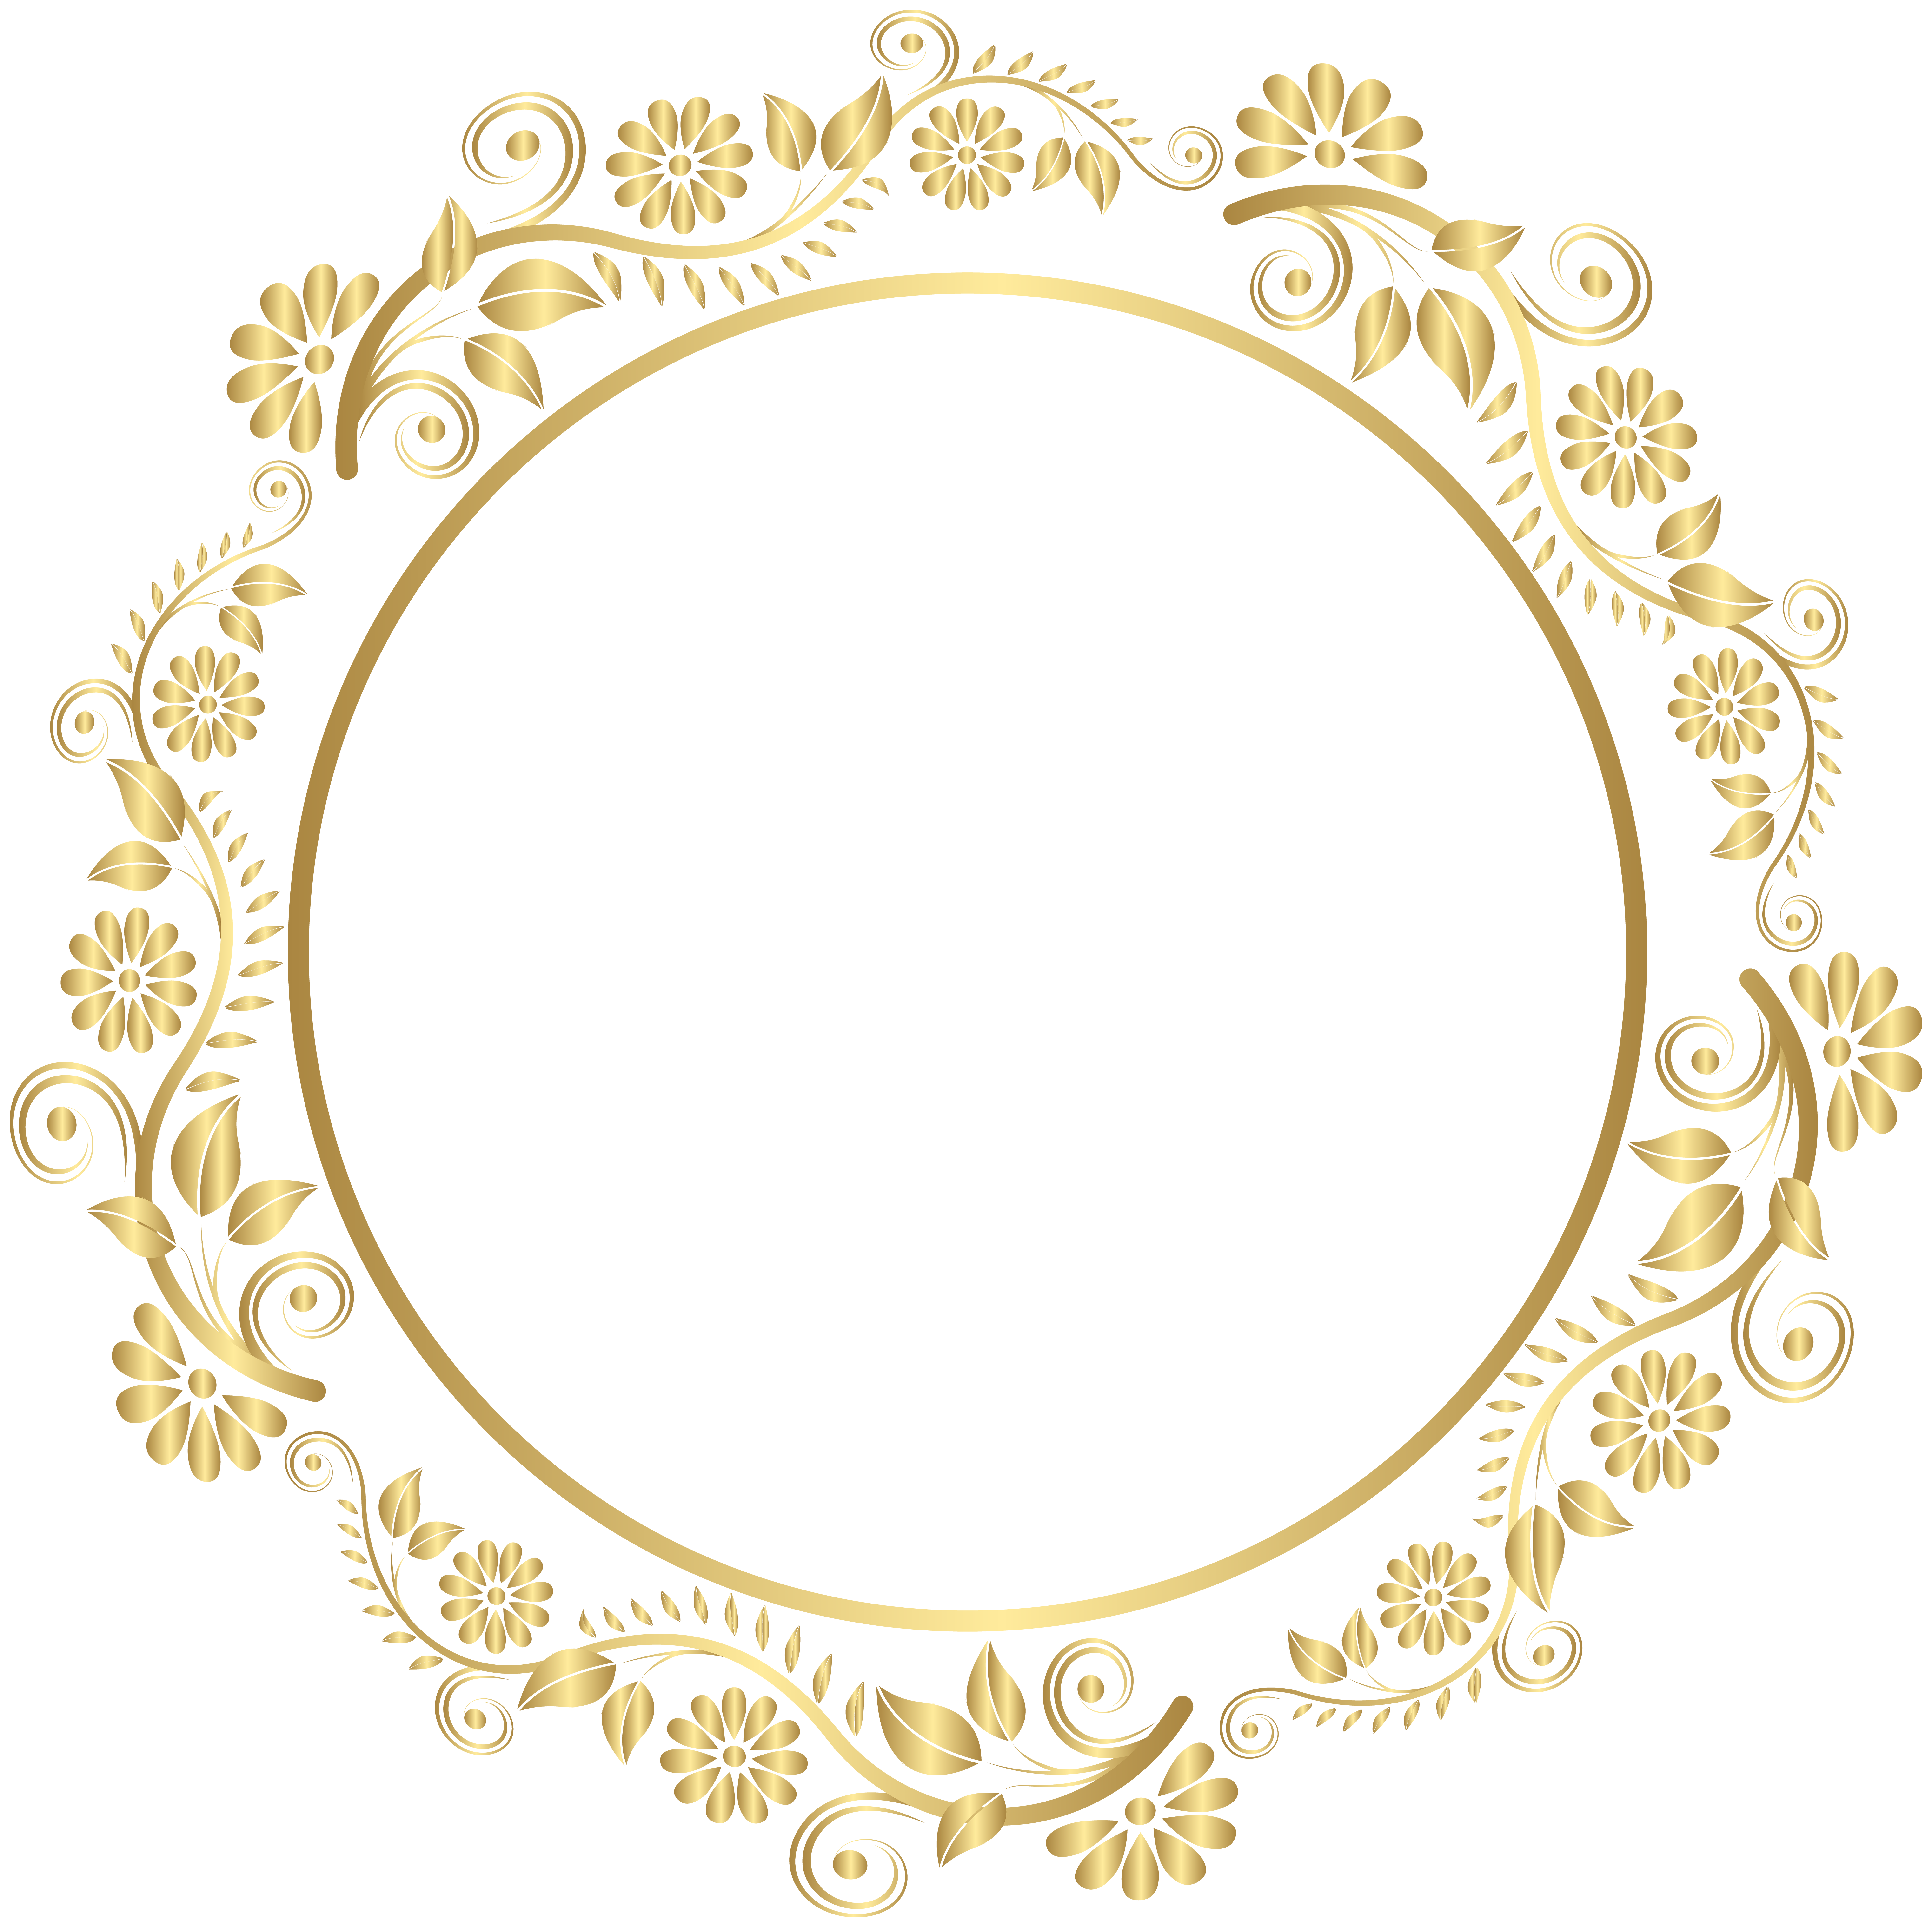 Round Gold Border Frame Deco Png Clip Art Gallery Yopriceville High Quality Images And Transparent Png Free Clipart Clip Art Clip Art Borders Flower Frame